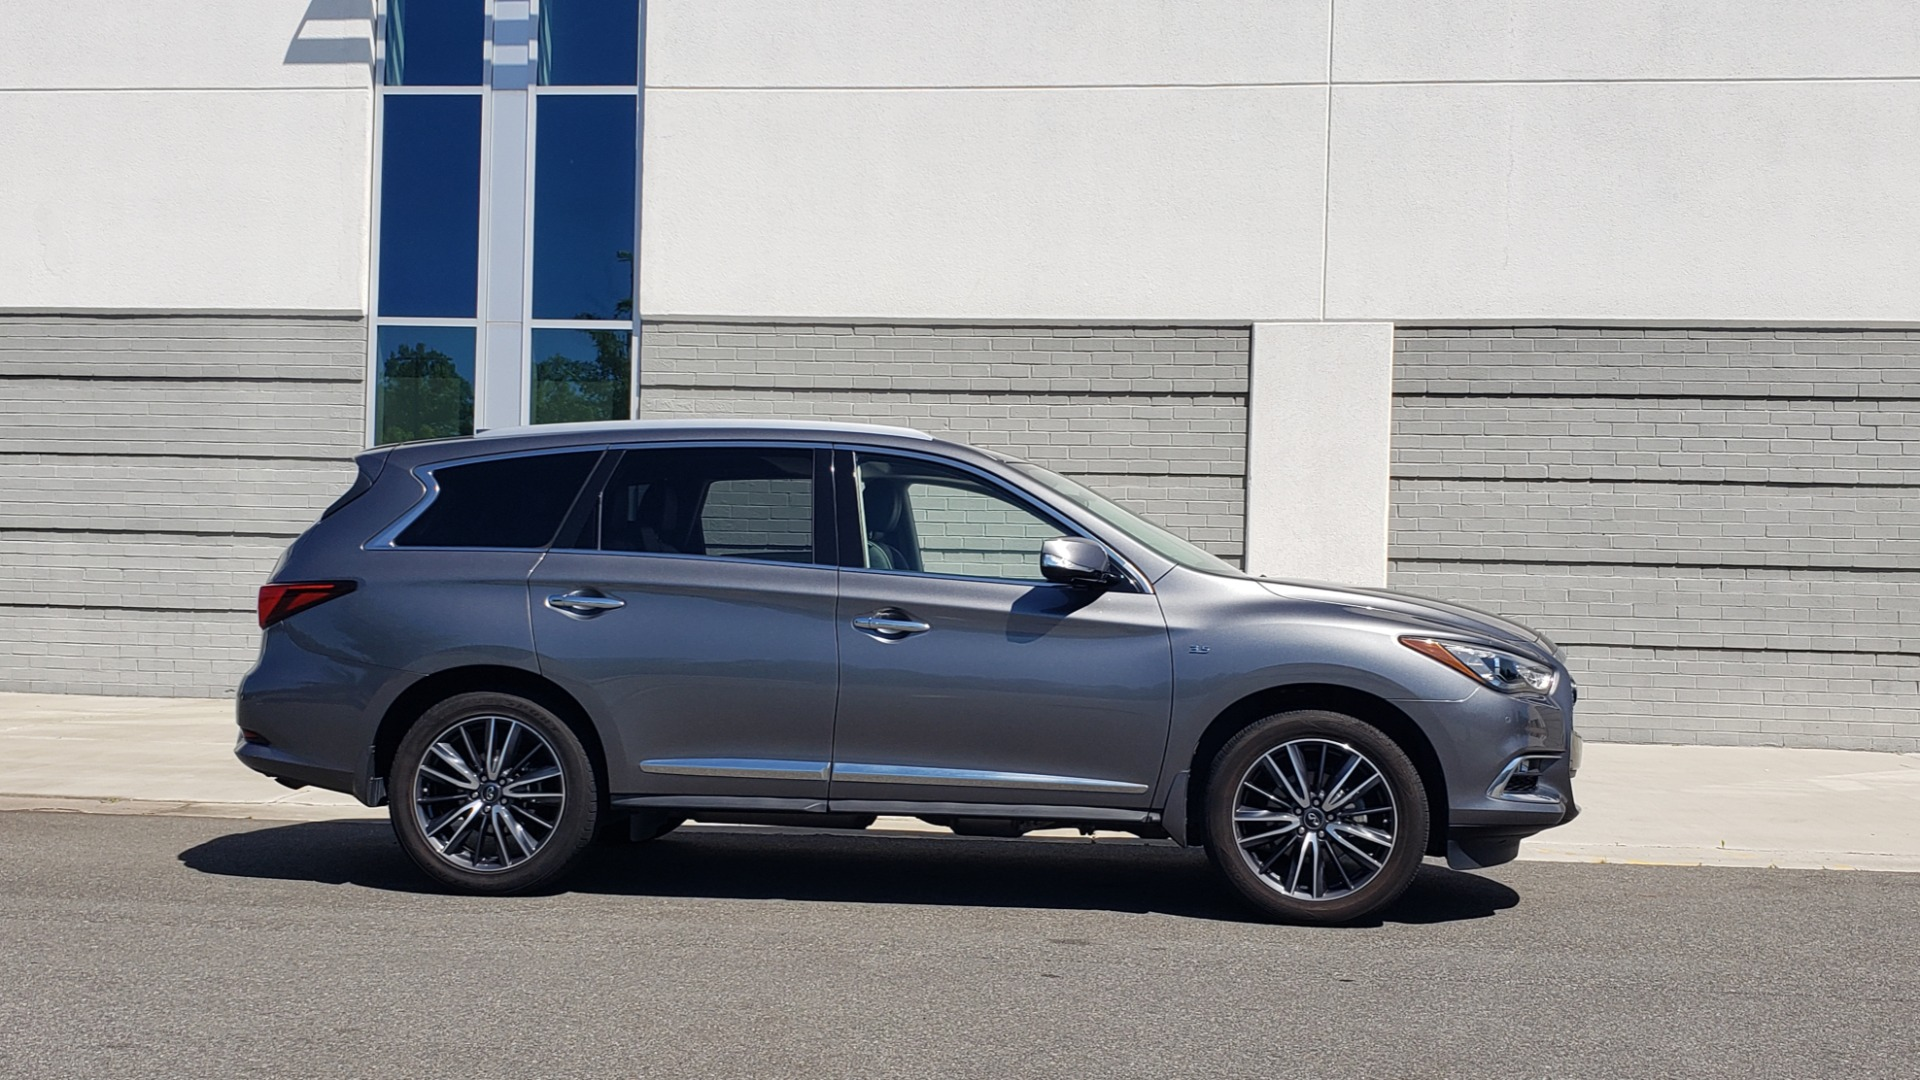 Used 2018 INFINITI QX60 3.5L V6 / FWD / CVT TRANS / NAV / SUNROOF / 3-ROWS / REARVIEW for sale $31,999 at Formula Imports in Charlotte NC 28227 9